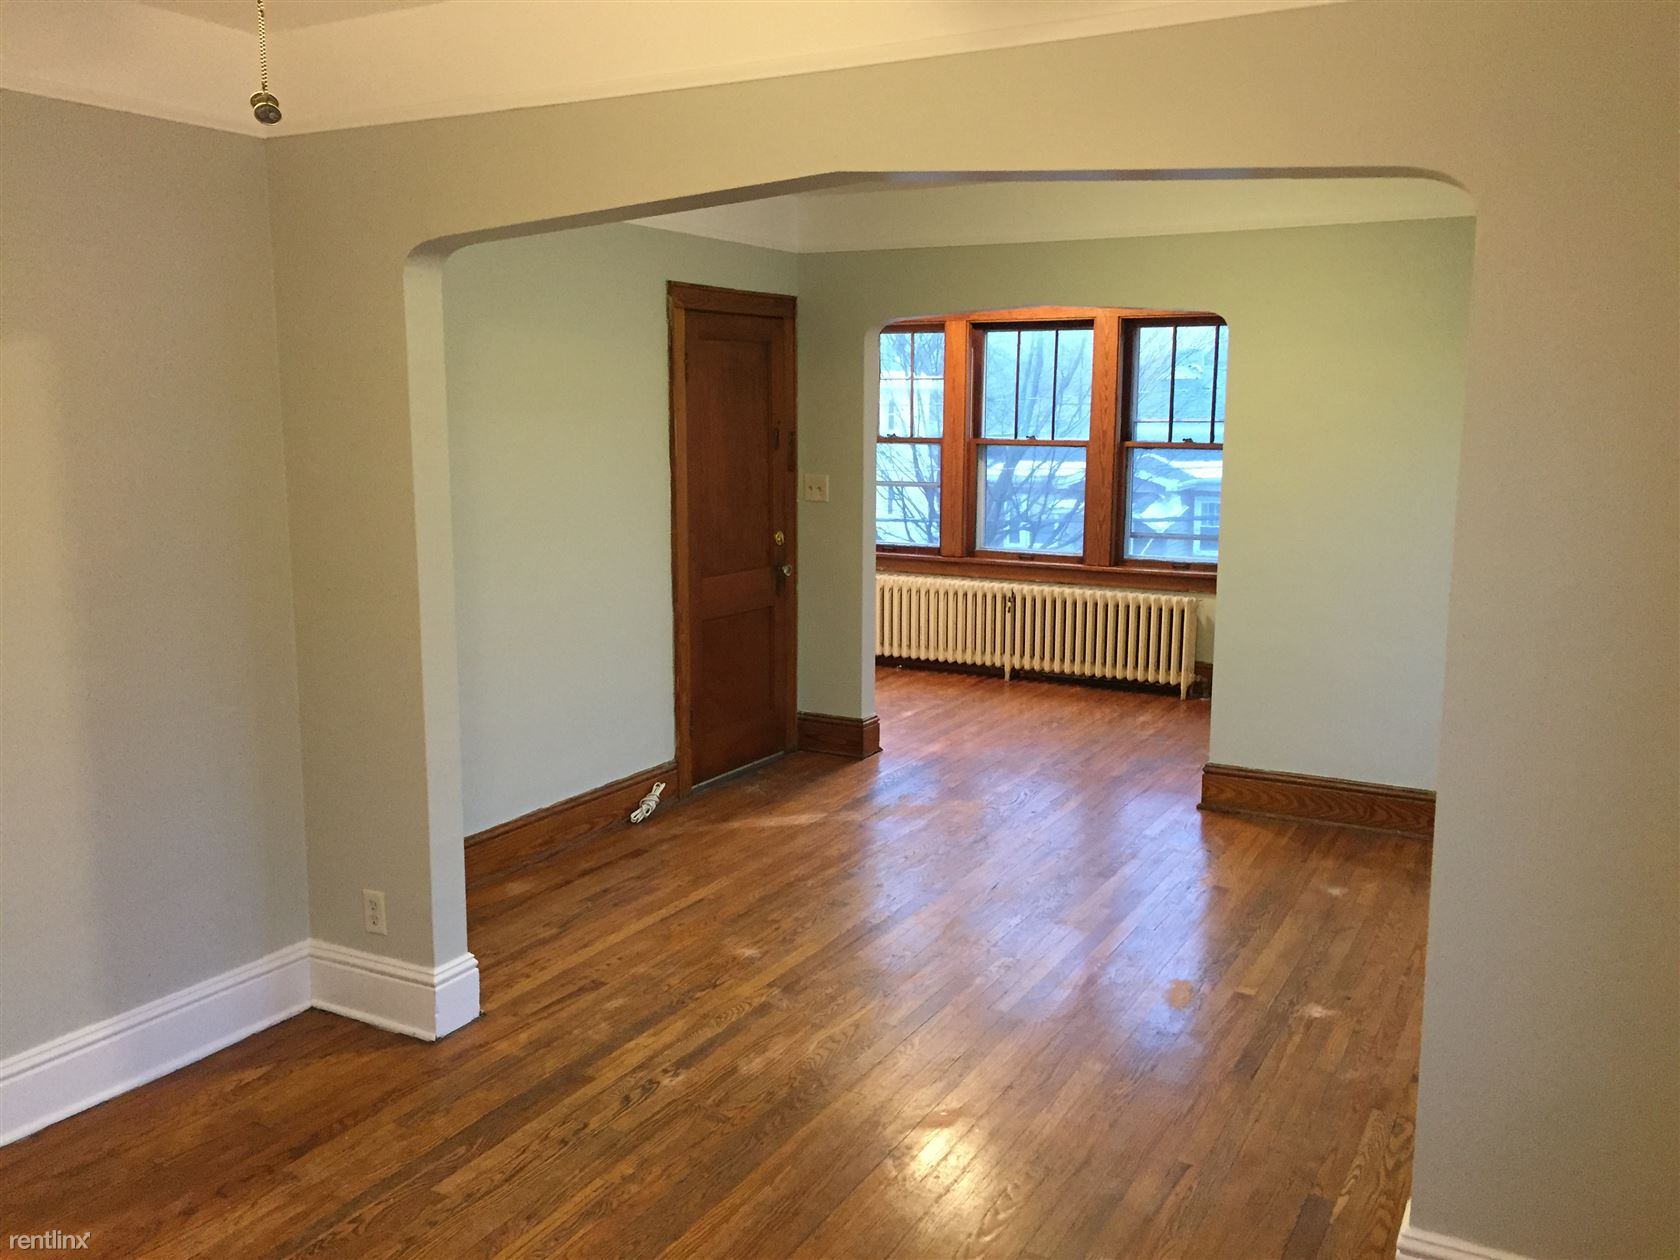 $1275 per month , 82 Sycamore St,